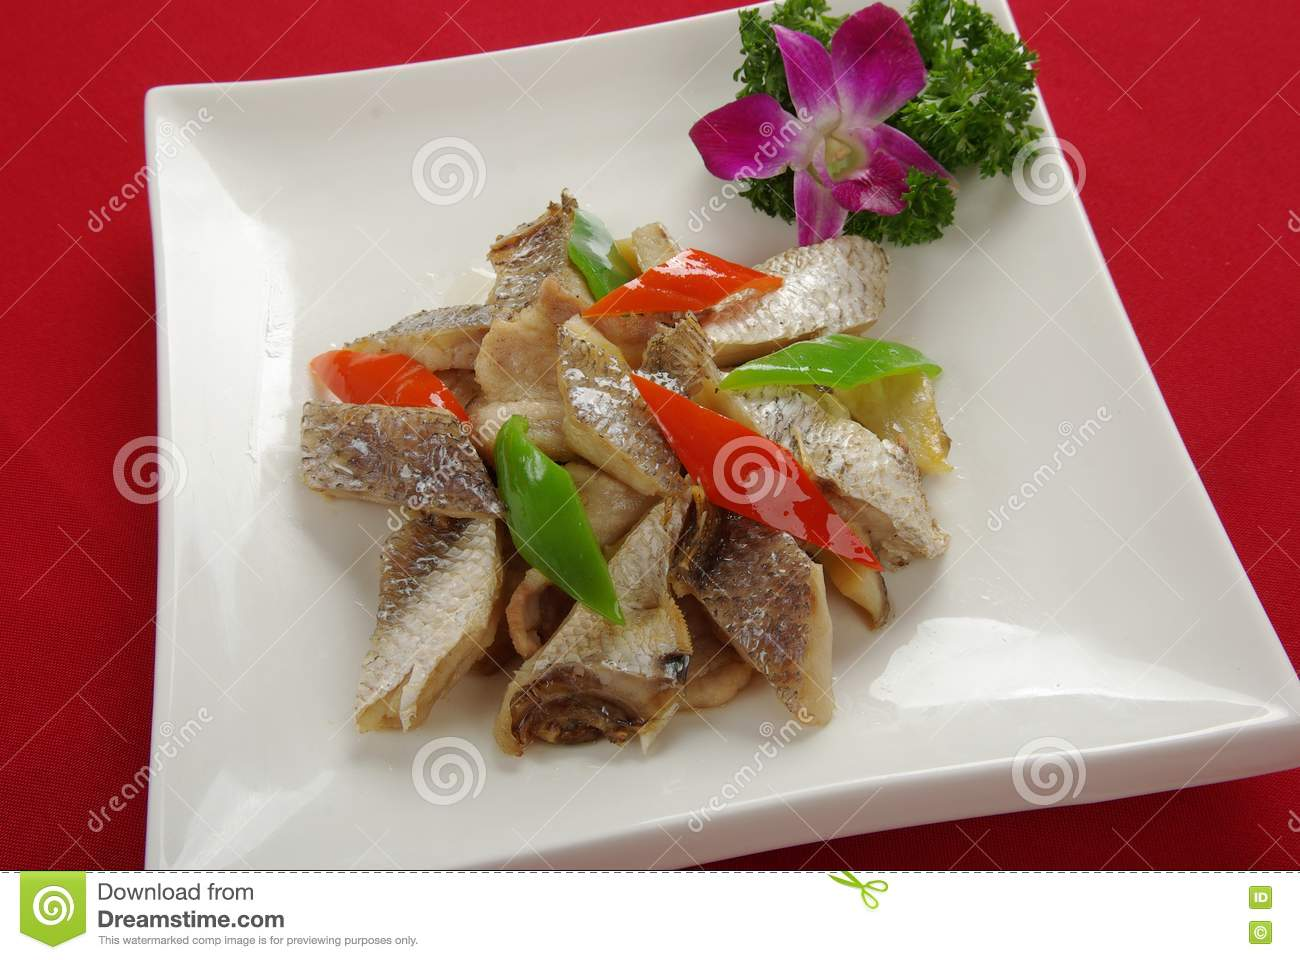 Dried salted fish stock photo image 19879640 for Dried salted fish